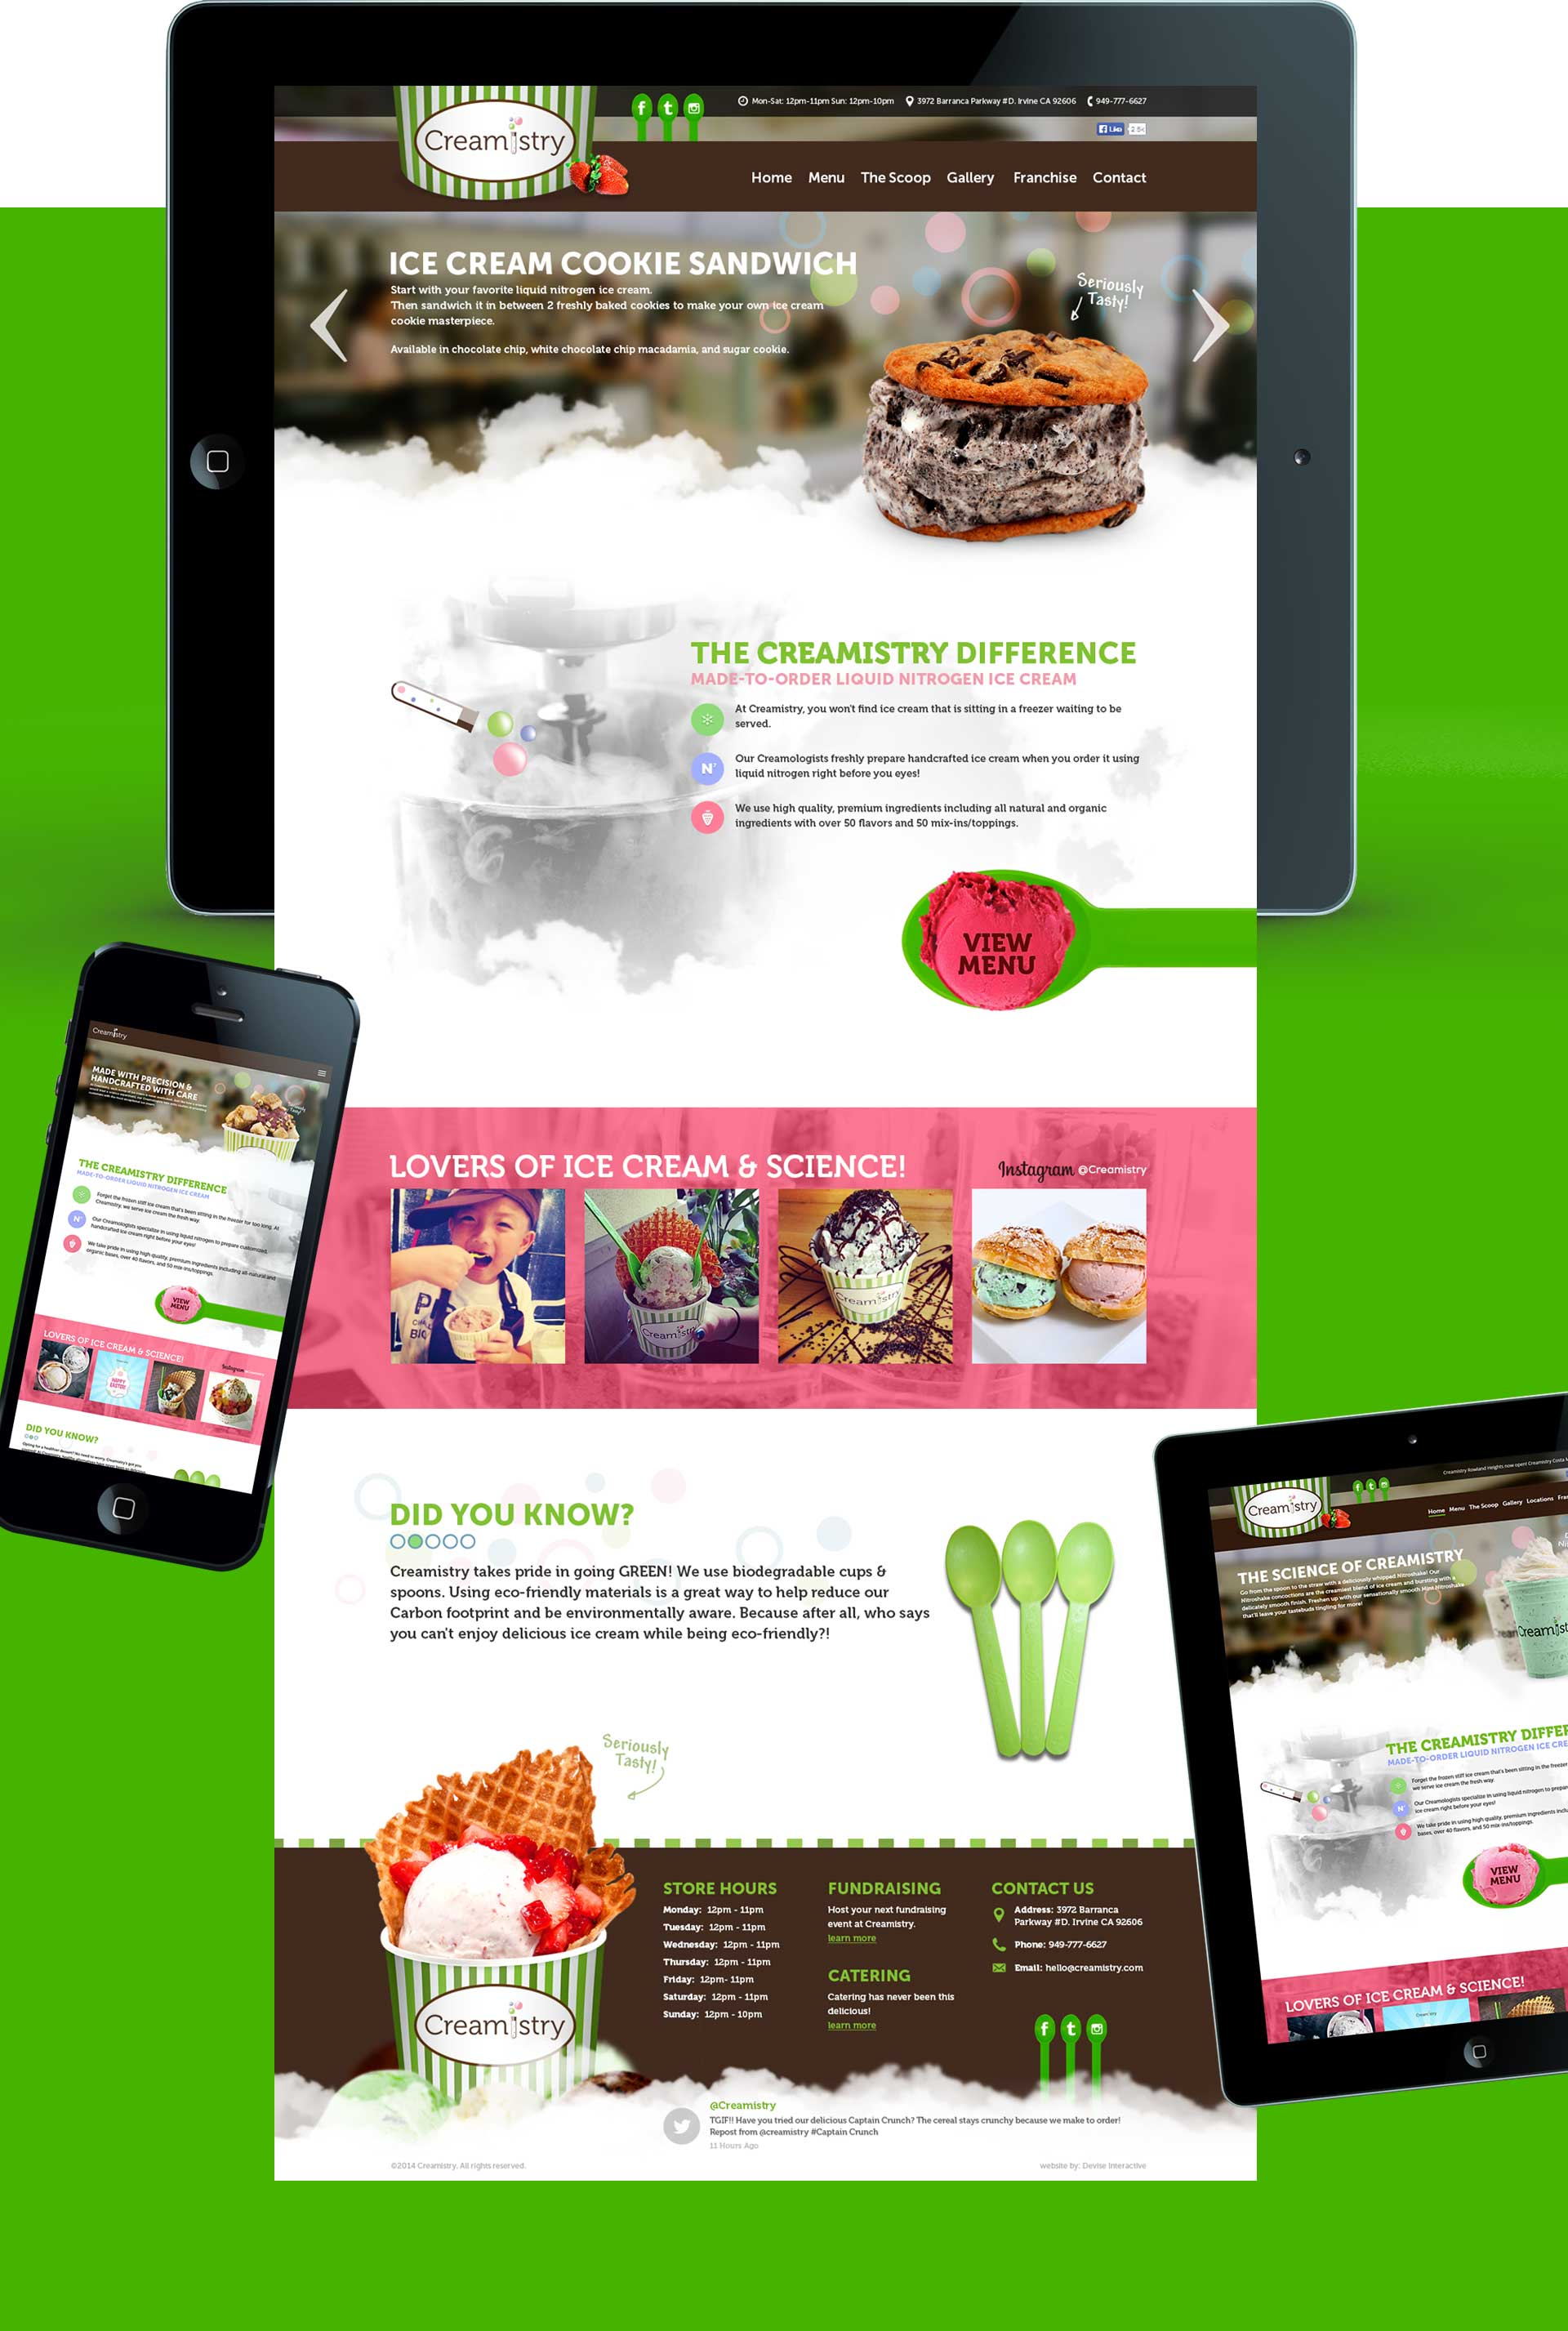 Creamistry on Mobile Devices